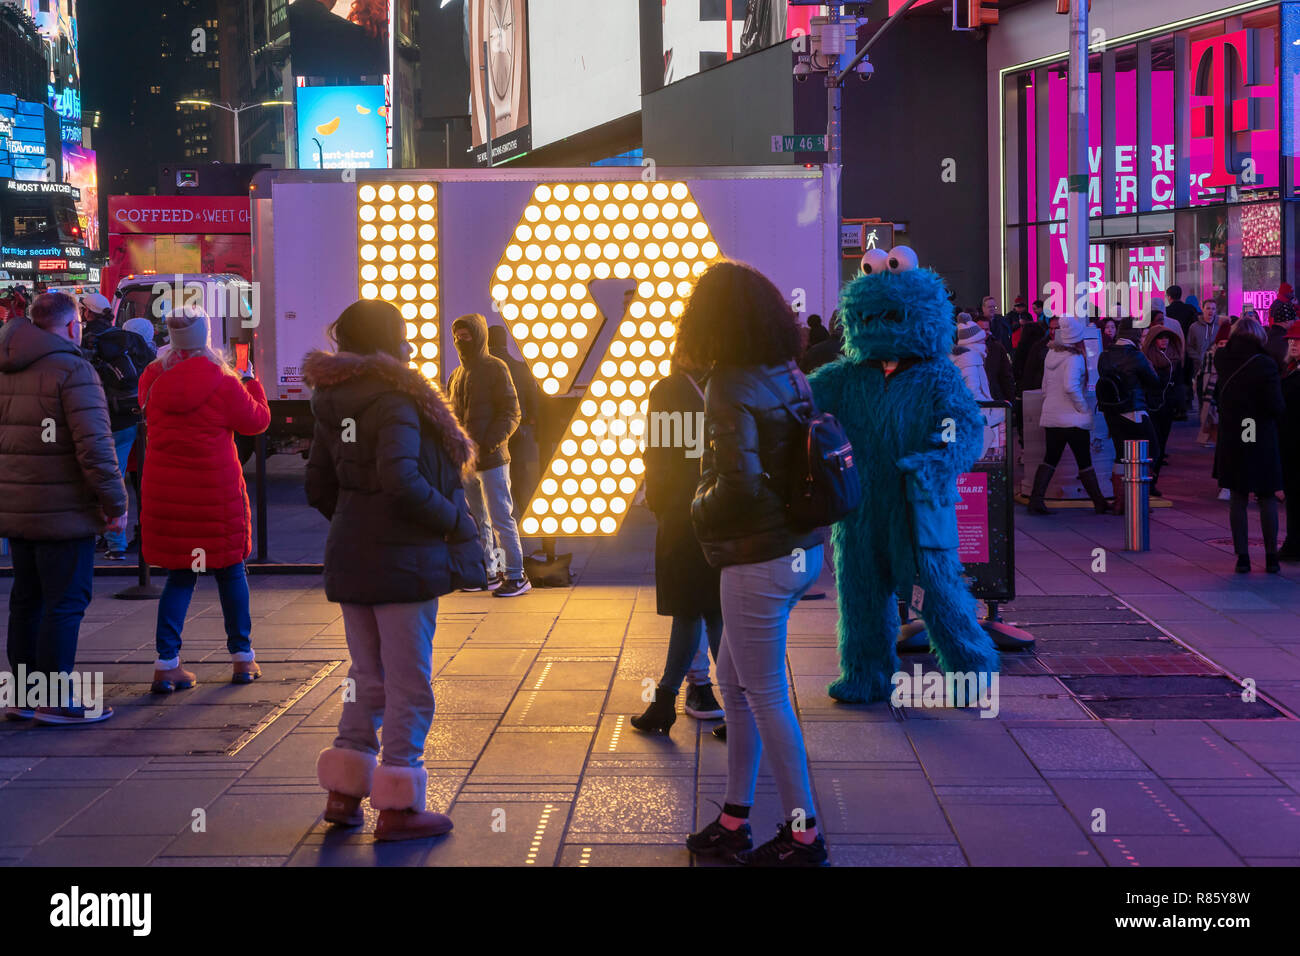 New York,NY/USA-December 12, 2018 Visitors to Times Square in New York pose in front of the two seven-foot-tall numerals '1' and '9' in Times Square in New York on Wednesday, December 12, 2019 .  The '19' will be part of the led display atop One Times Square which will light up at midnight January 1 spelling out '2019' ushering the New Year. The seven-foot tall numbers use energy efficient LED bulbs which will last the entire year, never having to be changed.  (© Richard B. Levine) Credit: Richard Levine/Alamy Live News - Stock Image